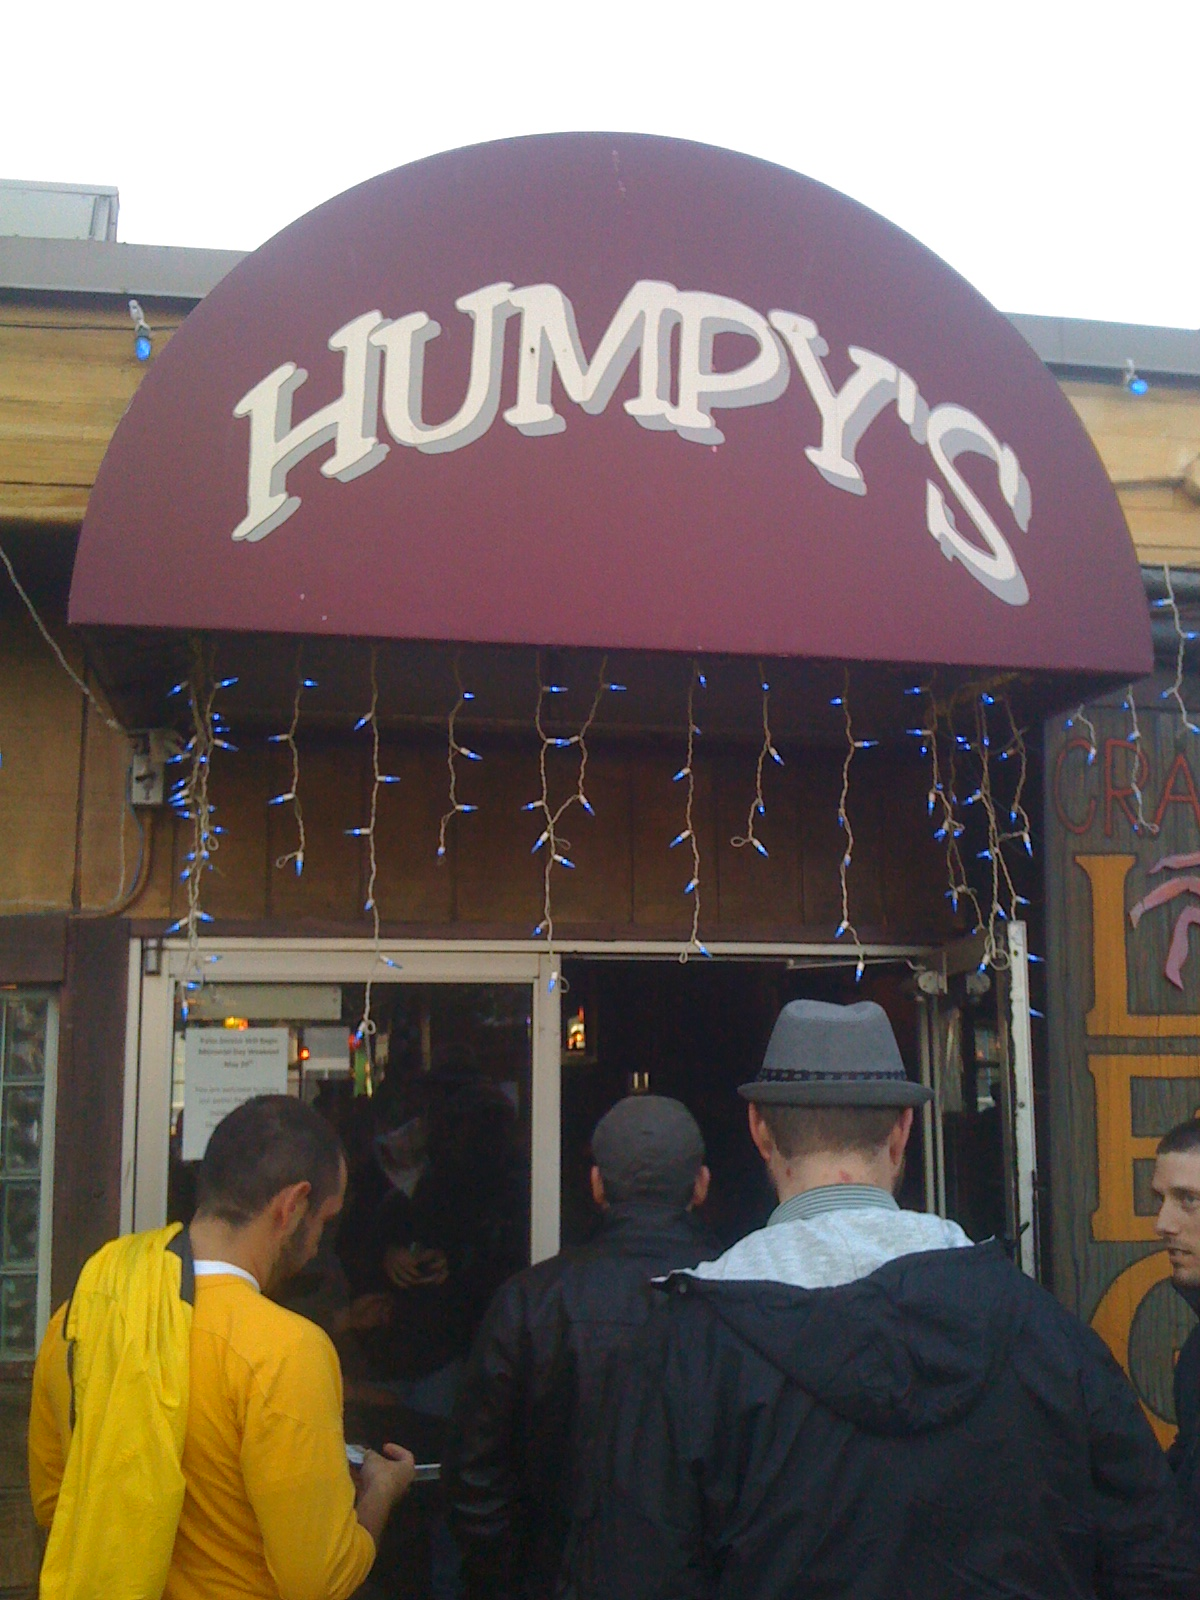 Humpy's Great Alaskan Alehouse in Anchorage Alaska